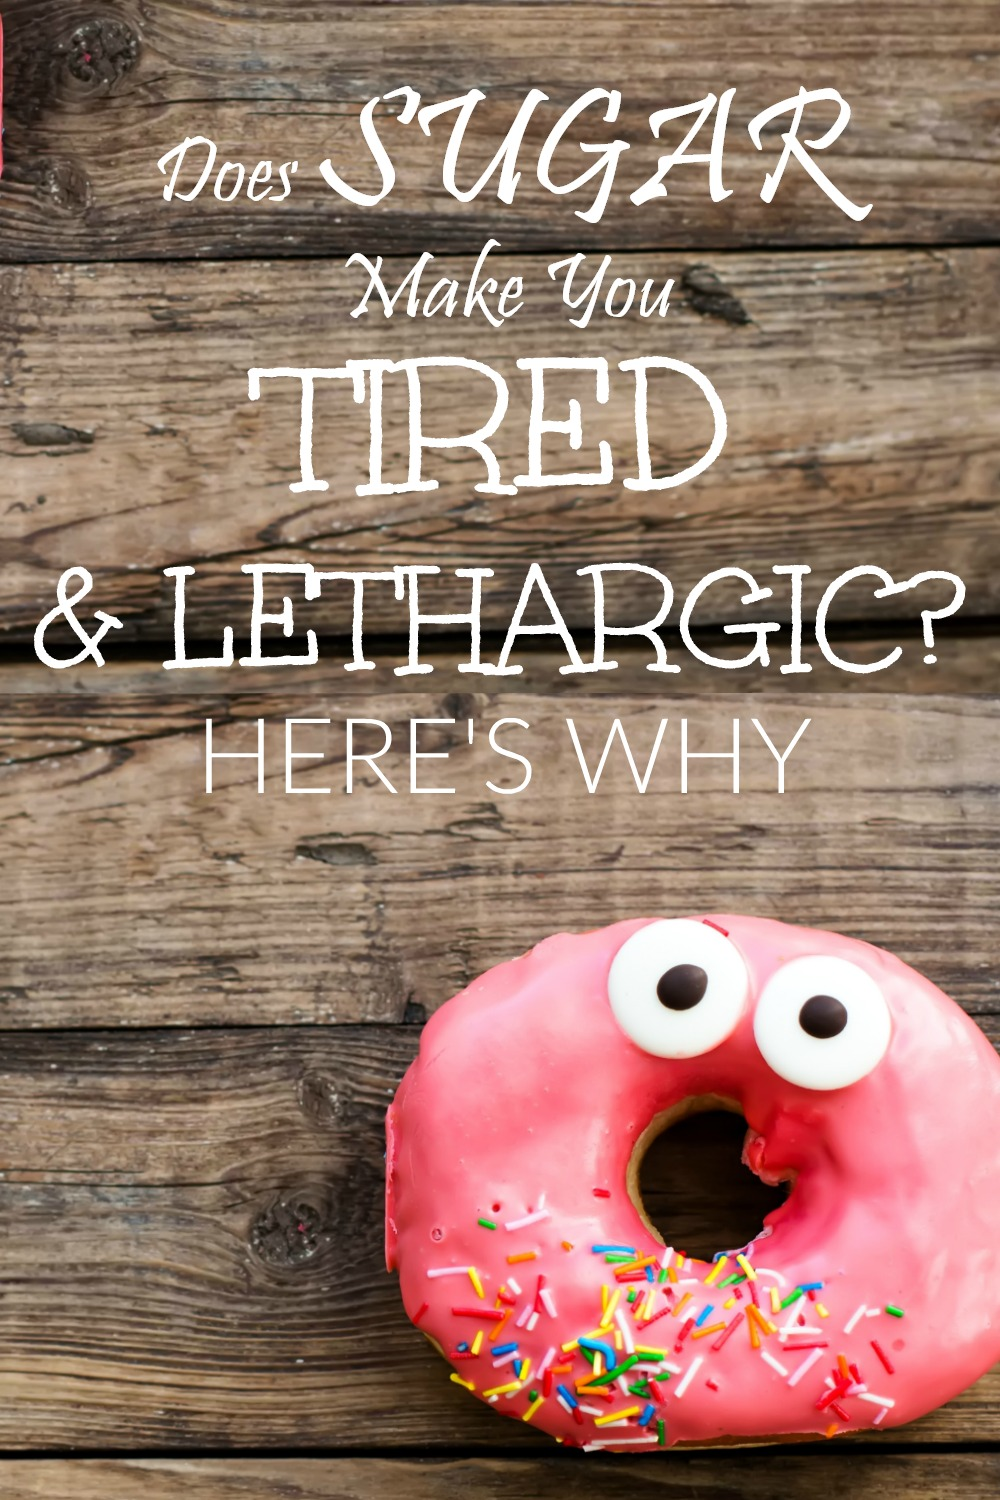 Does sugar make you tired, sleepy, lethargic, sick? Here's why it happens and what you can do about it